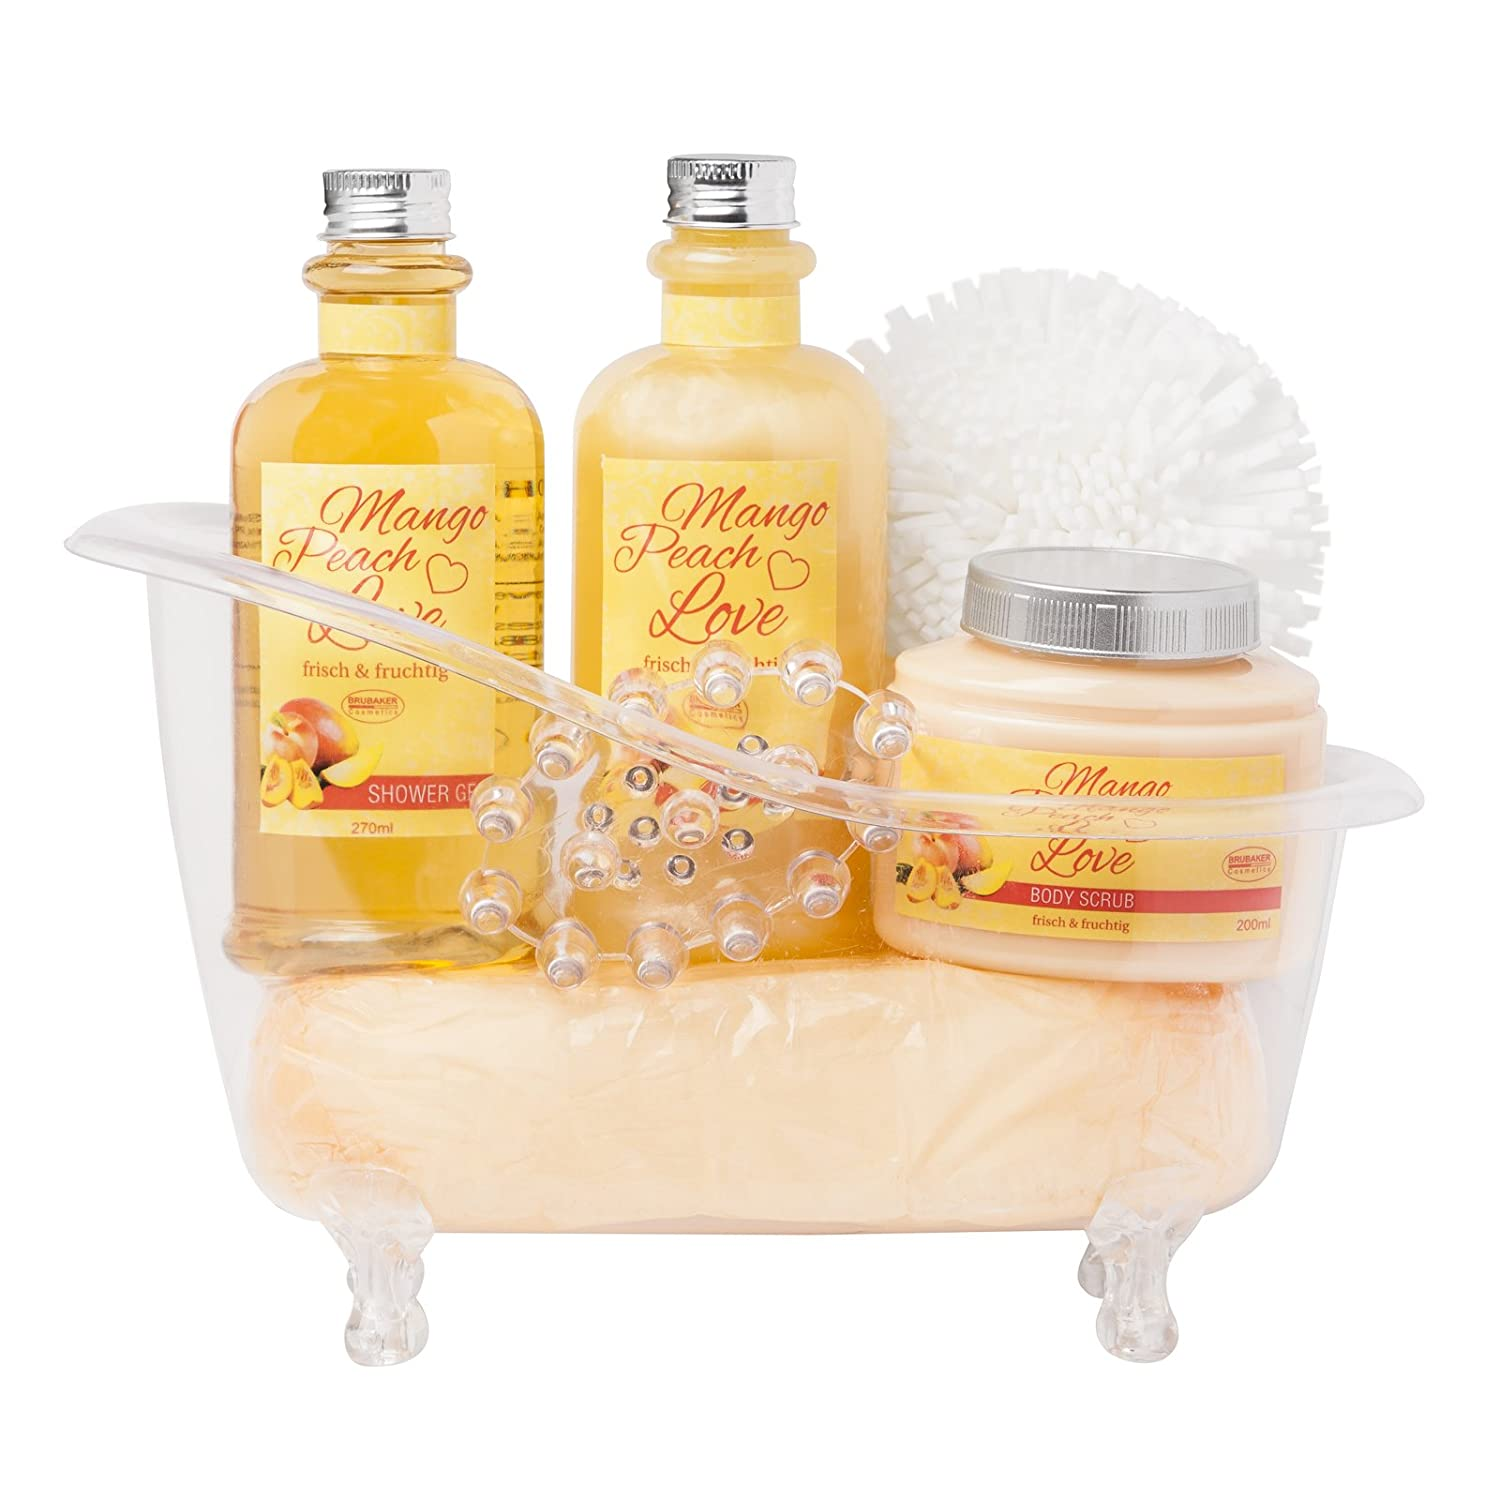 BRUBAKER 6 Pcs Gift Set Mango Peach Love' Beauty Spa Set With Acrylic Bathtub, Bubble Bath, Shower Gel, Body Scrub, Sponge, Acrylic Massage Device